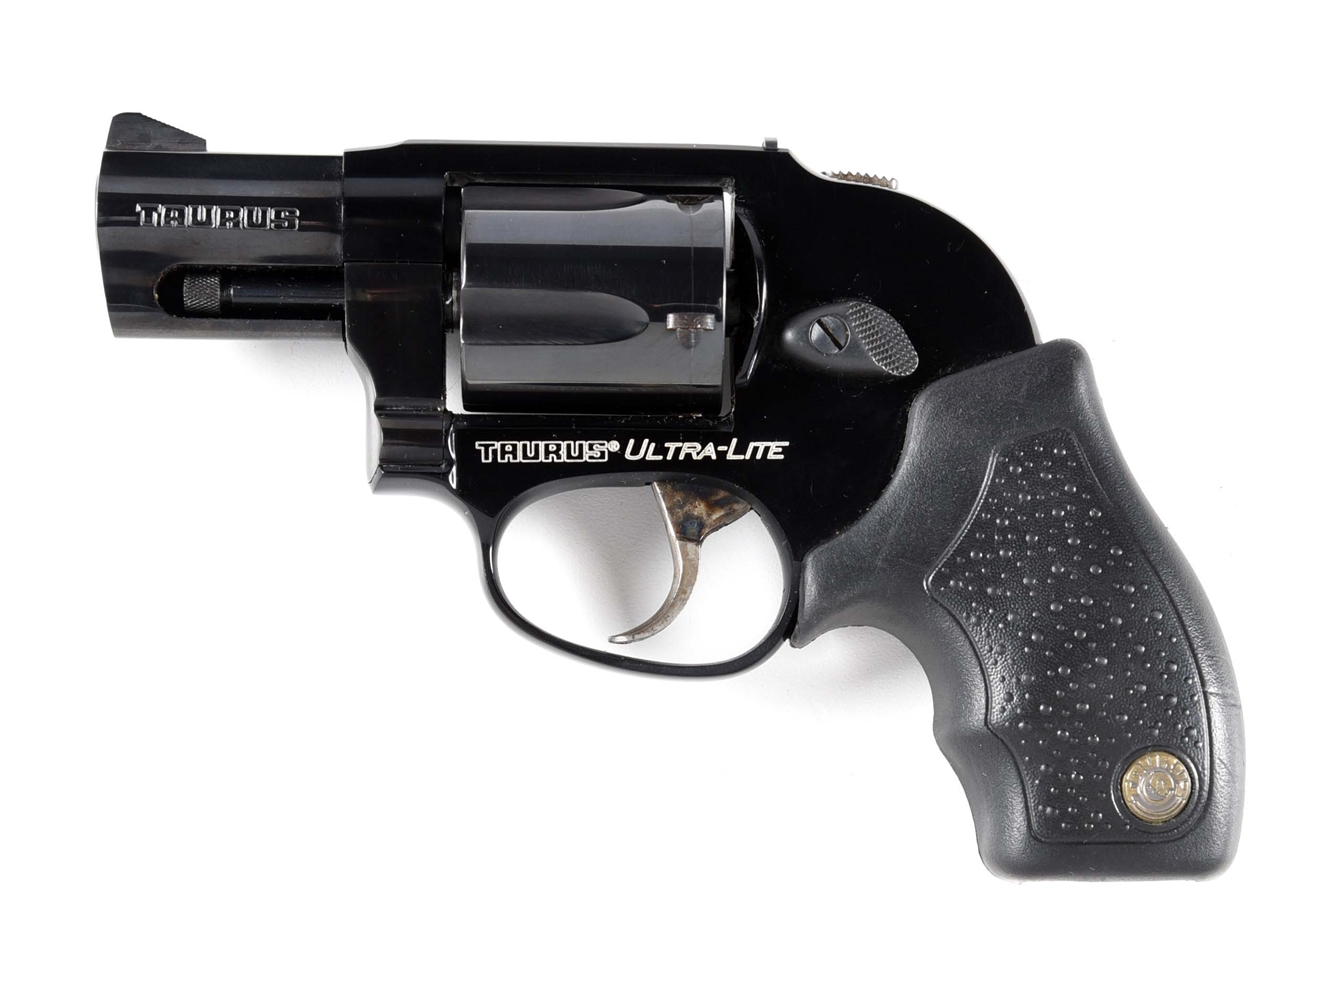 (M) TUARUS ULTRA-LITE DOUBLE ACTION REVOLVER WITH BOX.